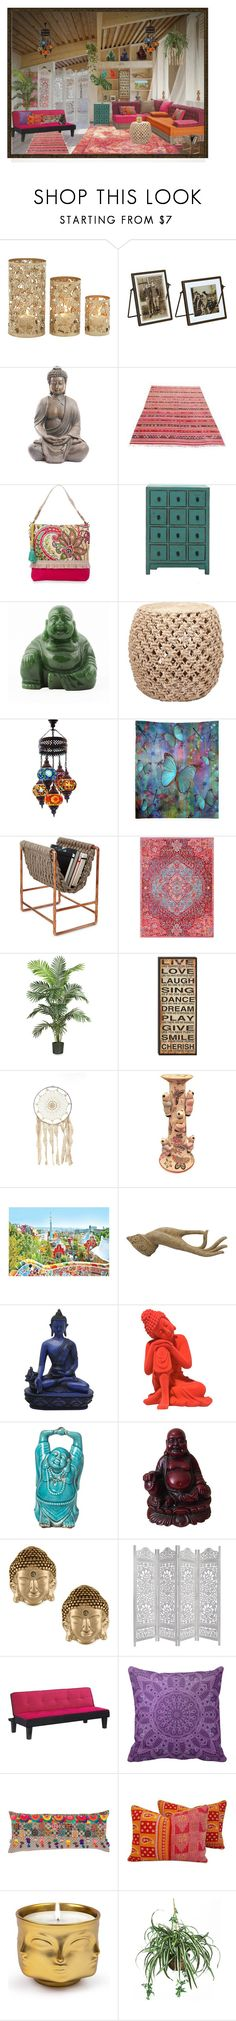 """""""Bohemian"""" by colonae ❤ liked on Polyvore featuring interior, interiors, interior design, home, home decor, interior decorating, Spartina 449, Surya, Nearly Natural and Rachel Rachel Roy"""